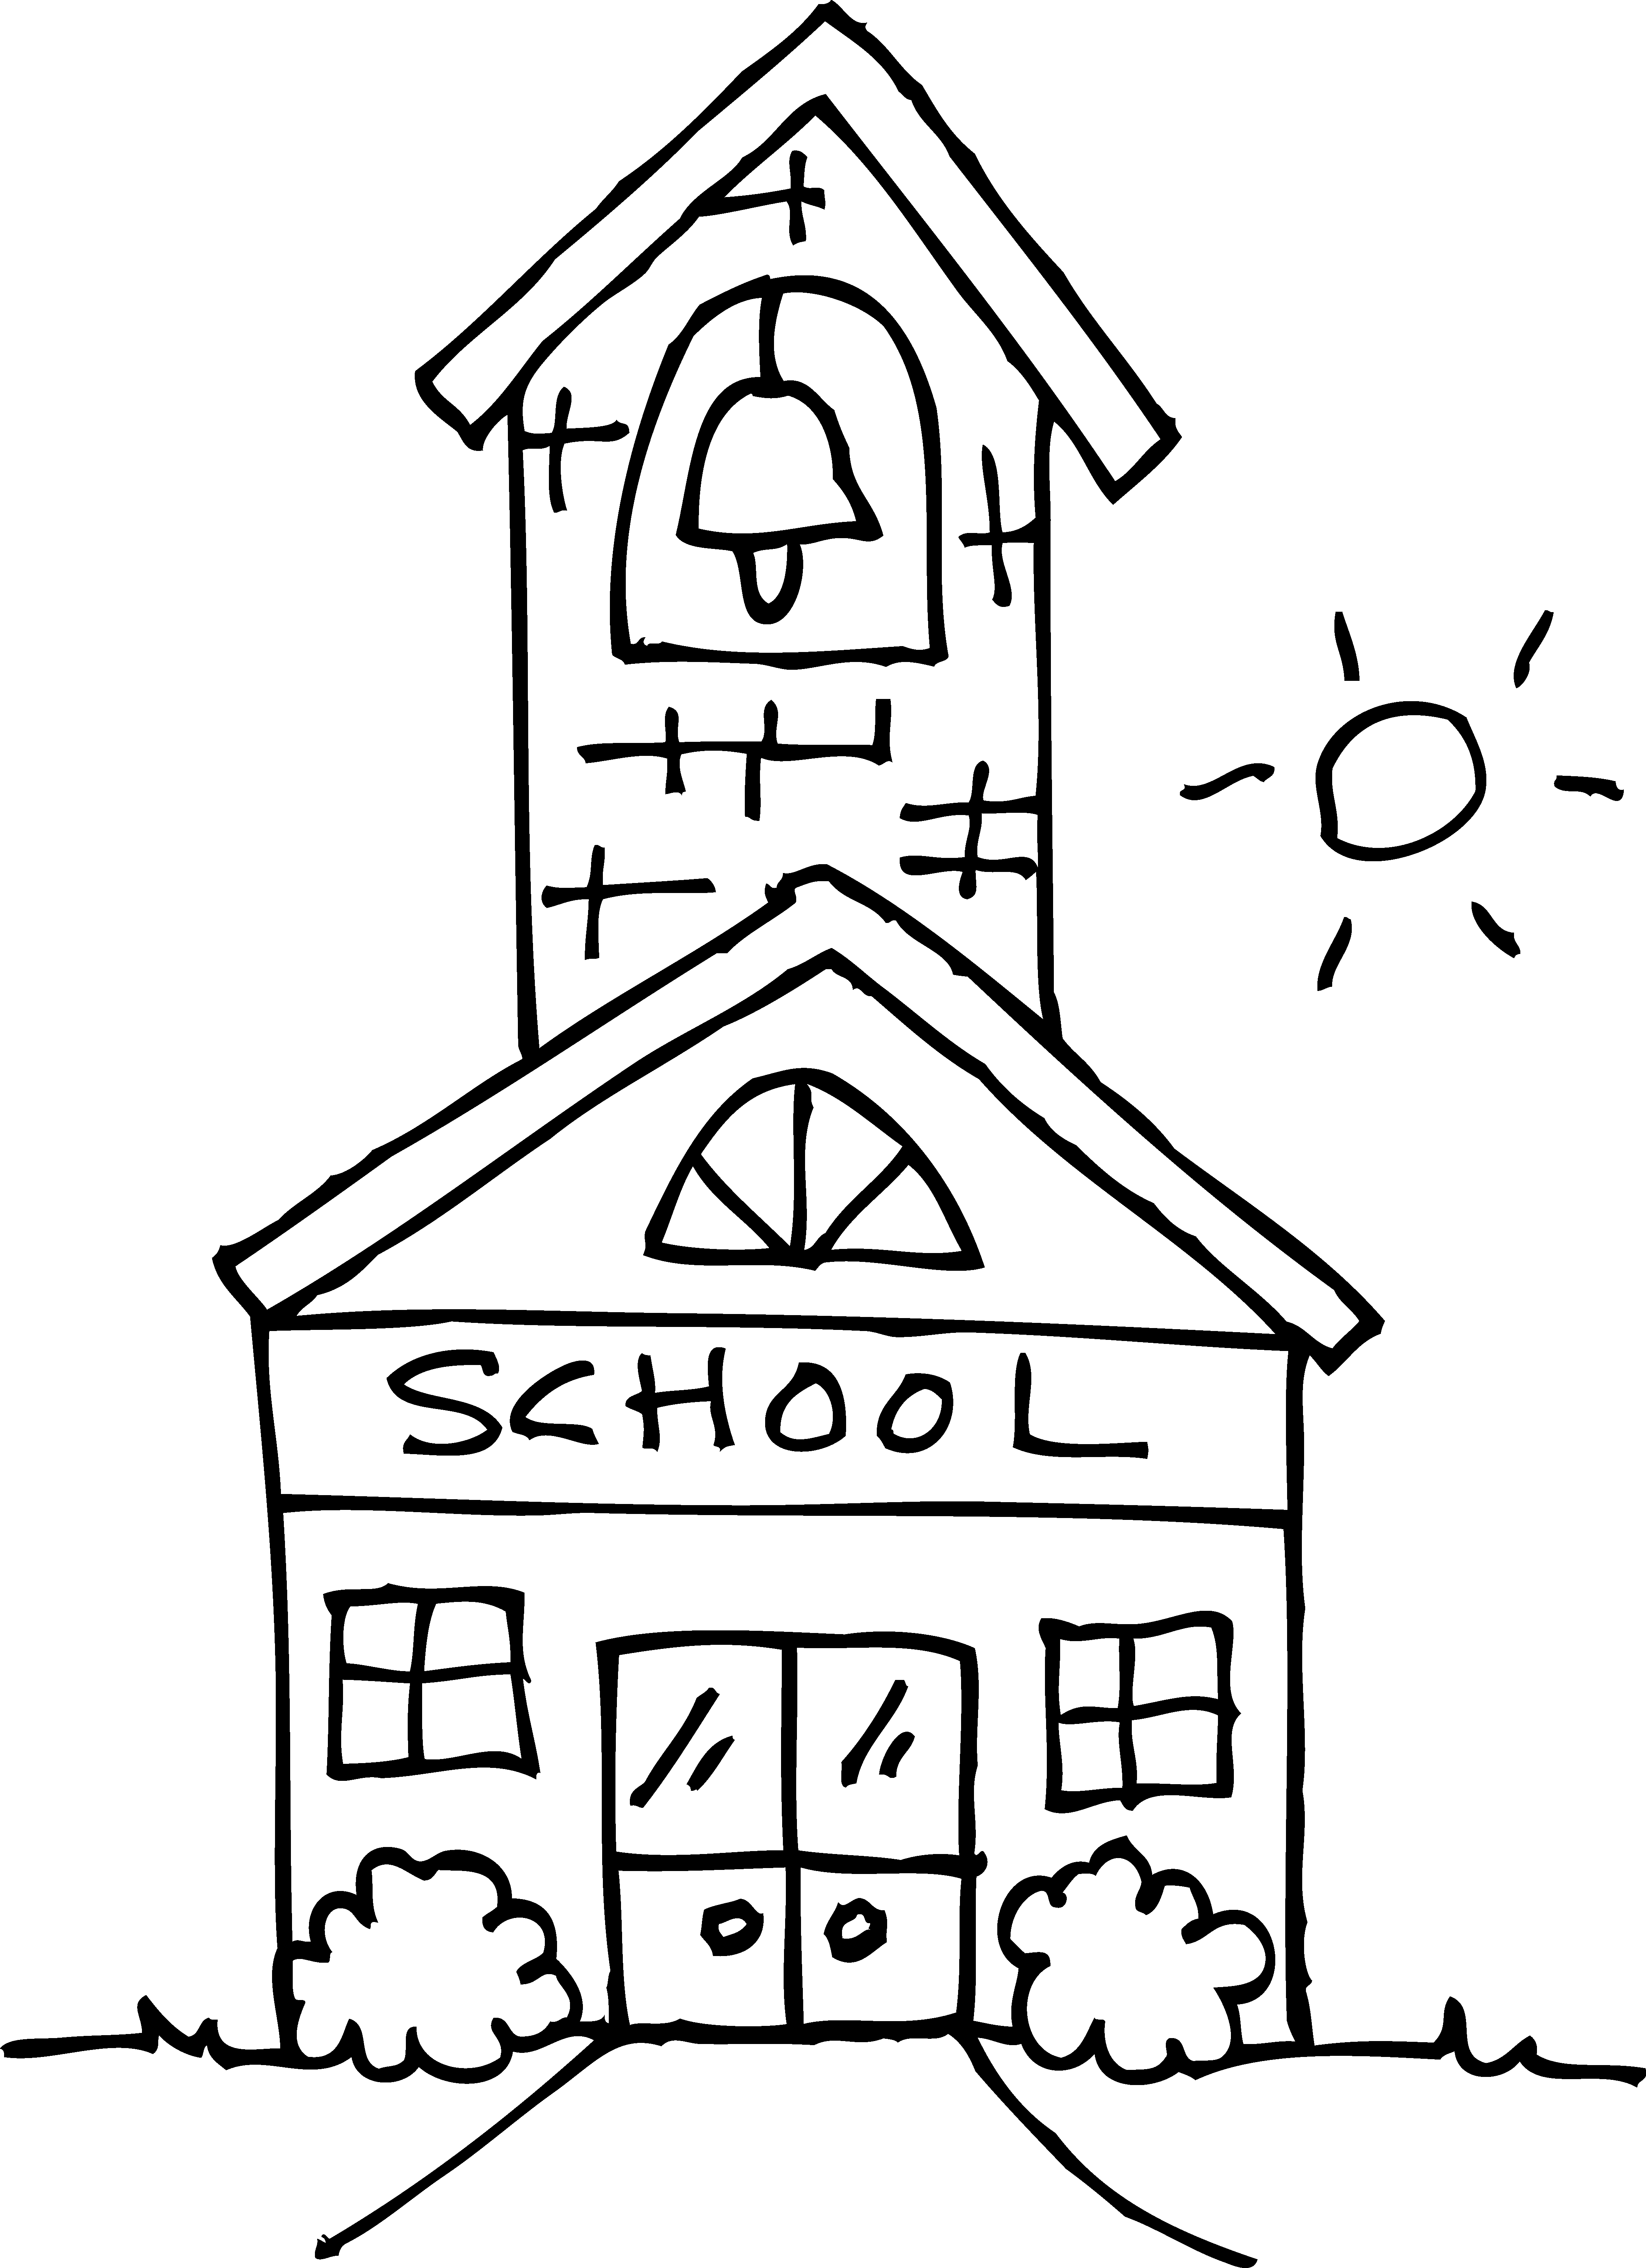 School clipart black and white svg download school clipart black and white - Google Search | hd quilt ... svg download